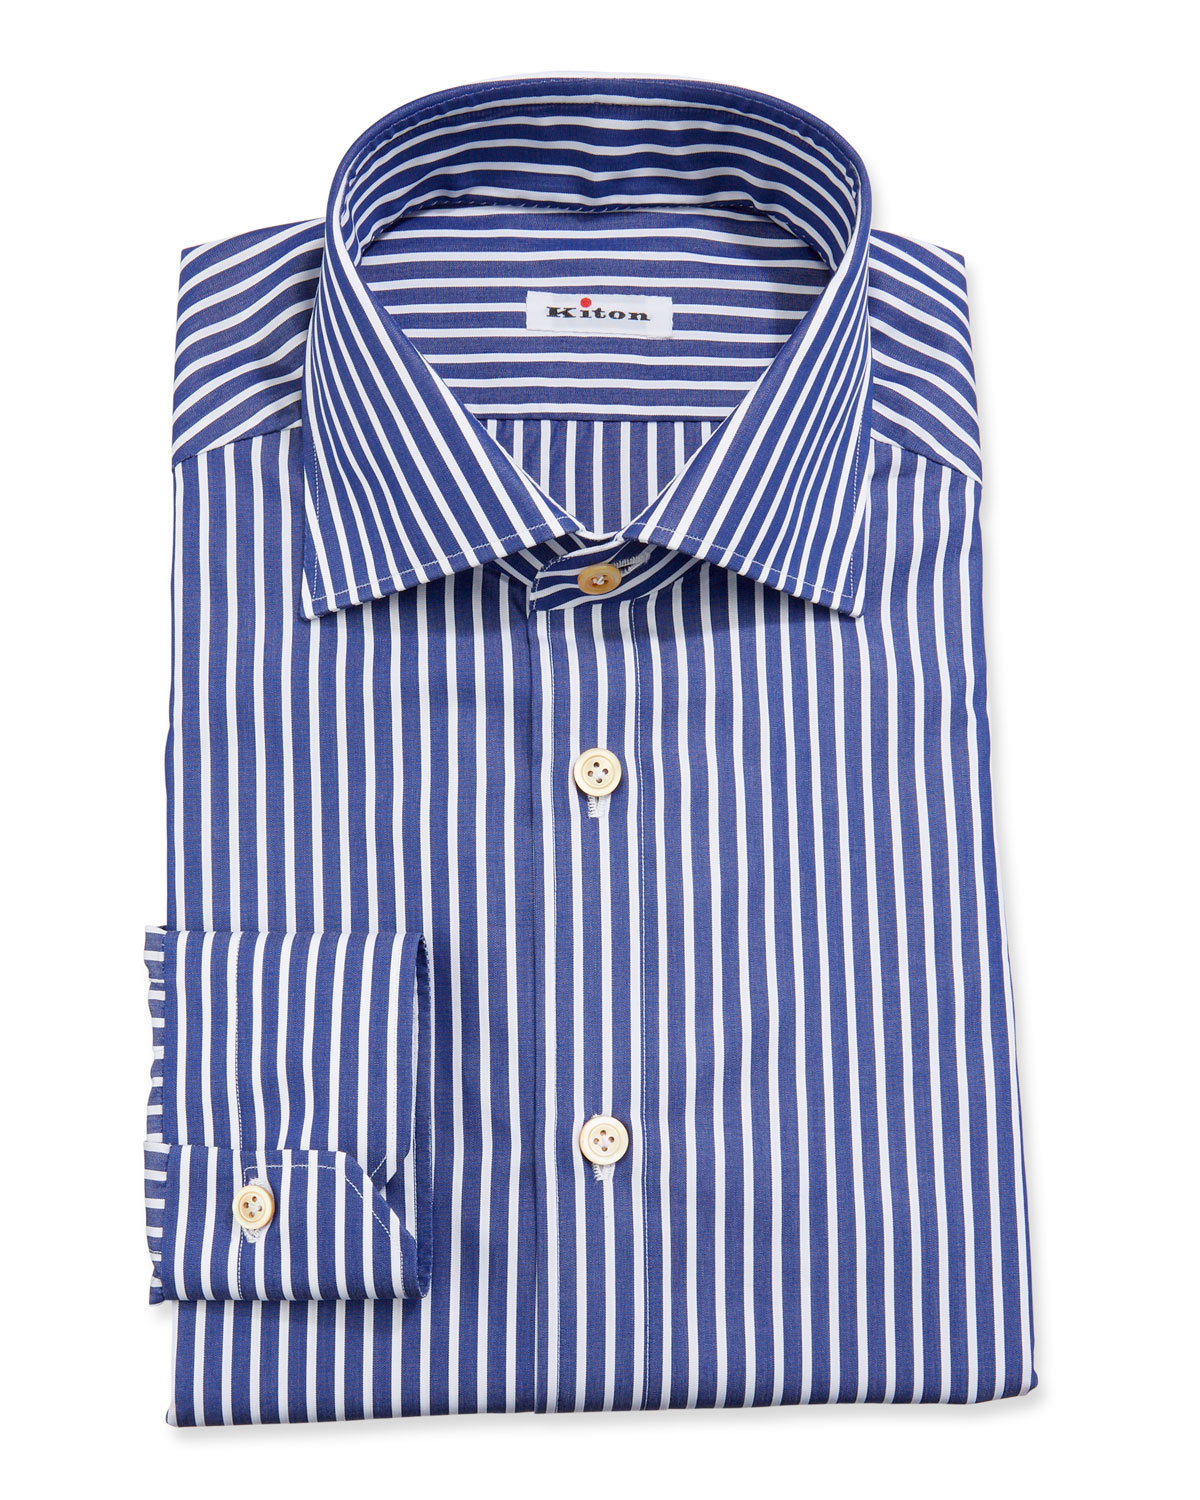 Kiton Dresses BENGAL-STRIPE DRESS SHIRT